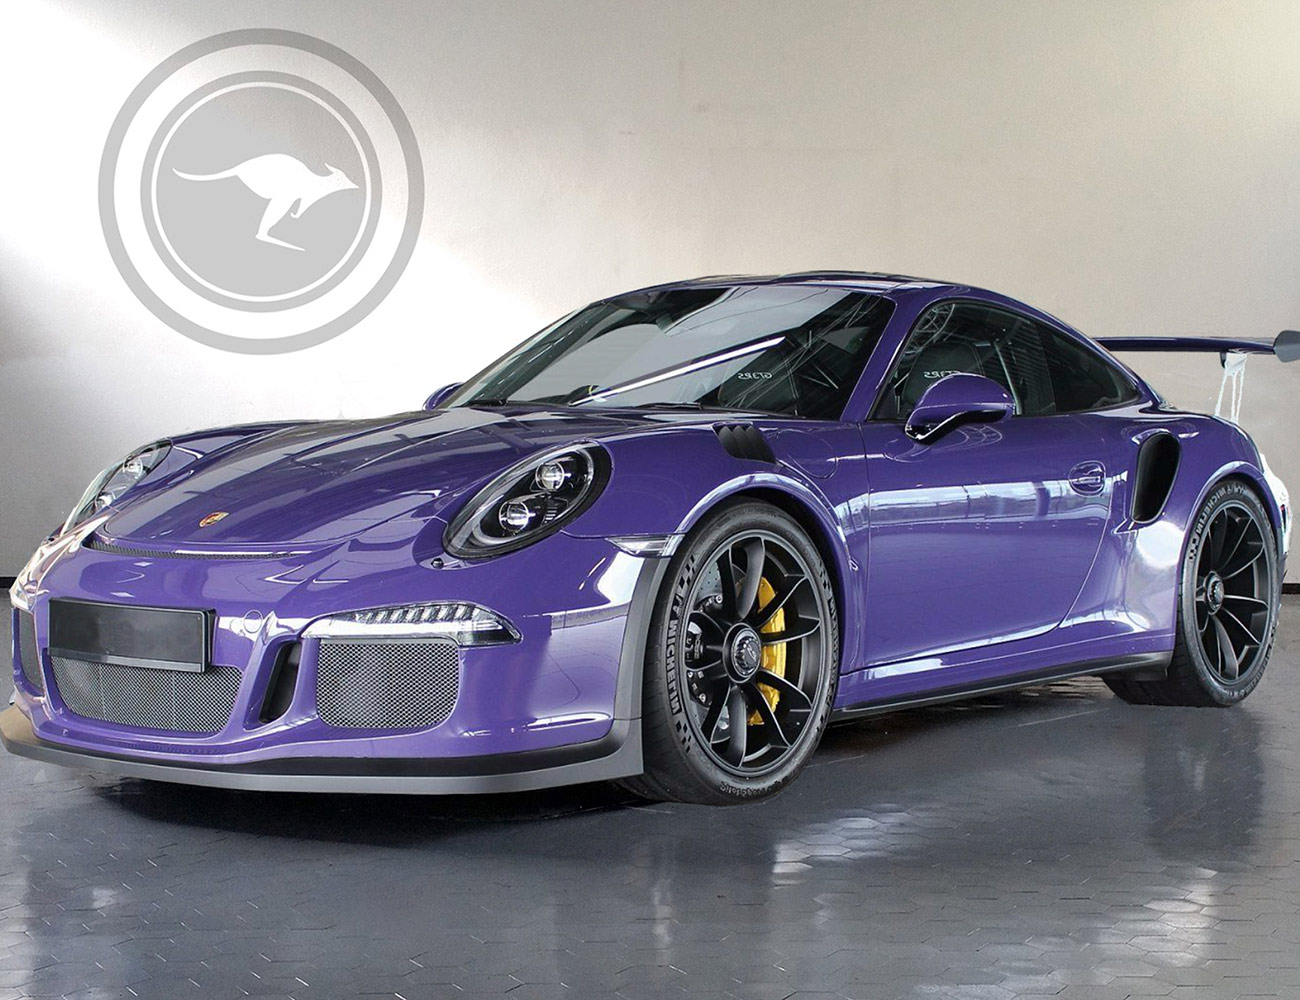 Porsche 991 GT3 for rent, find out